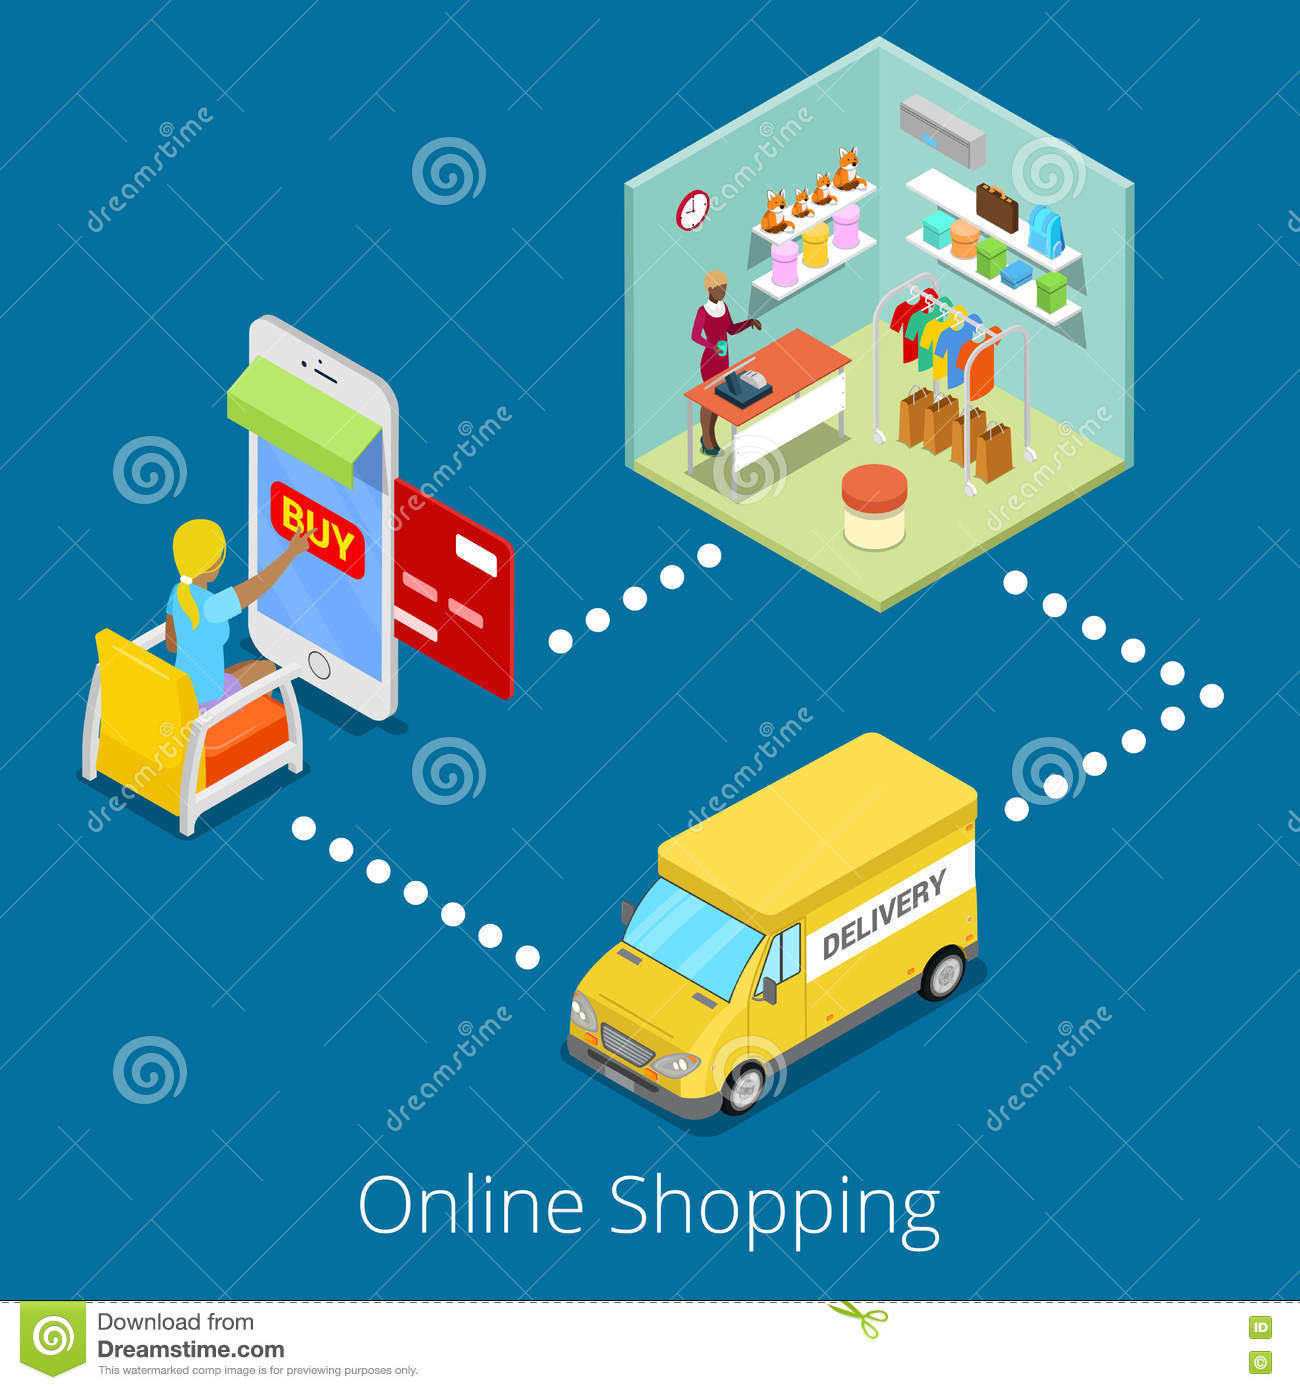 Online clothes shopping fast delivery